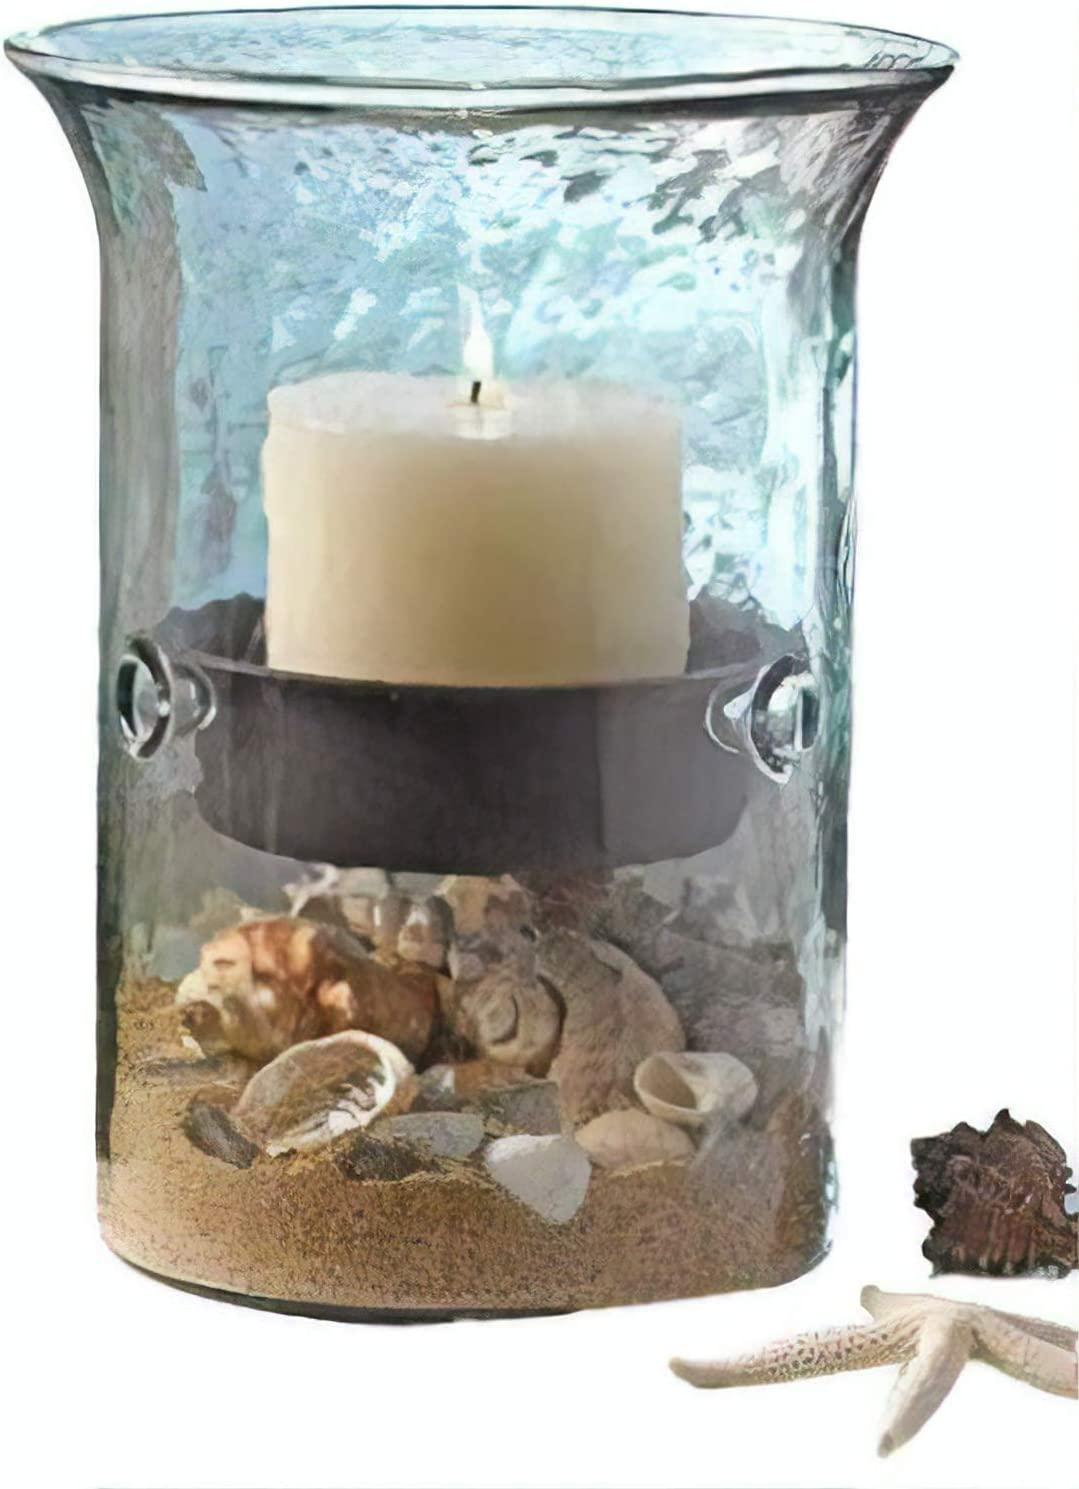 First of a Kind Glass Hurricane Pillar Candle Holder with Rustic Metal Insert, Perfect as a Centerpiece (Medium)